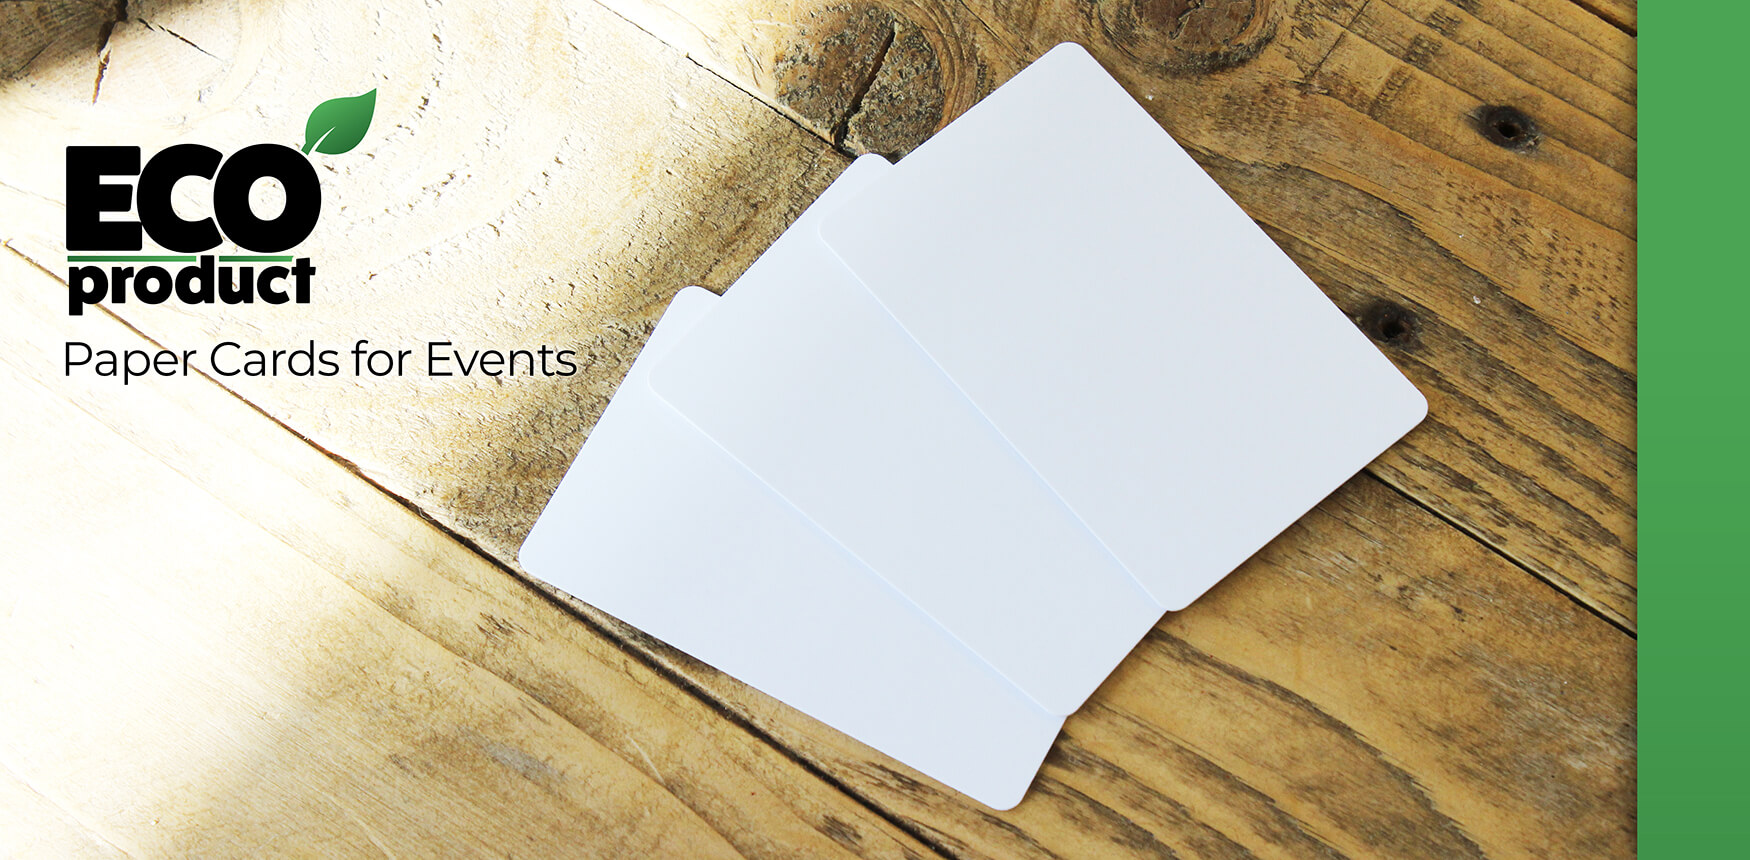 Evolis biodegradable paper cards for events